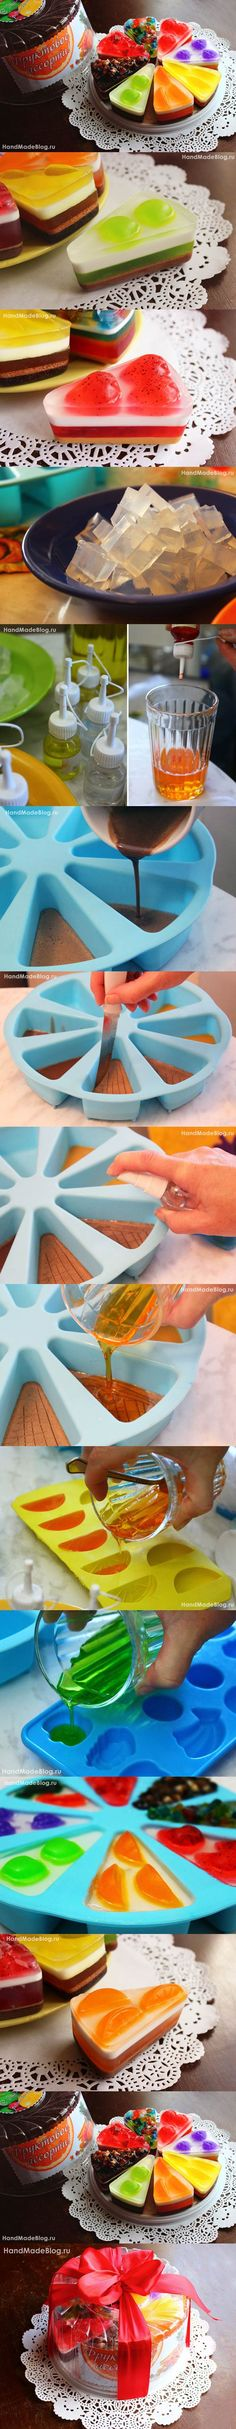 DIY Beautiful Cake of Soap